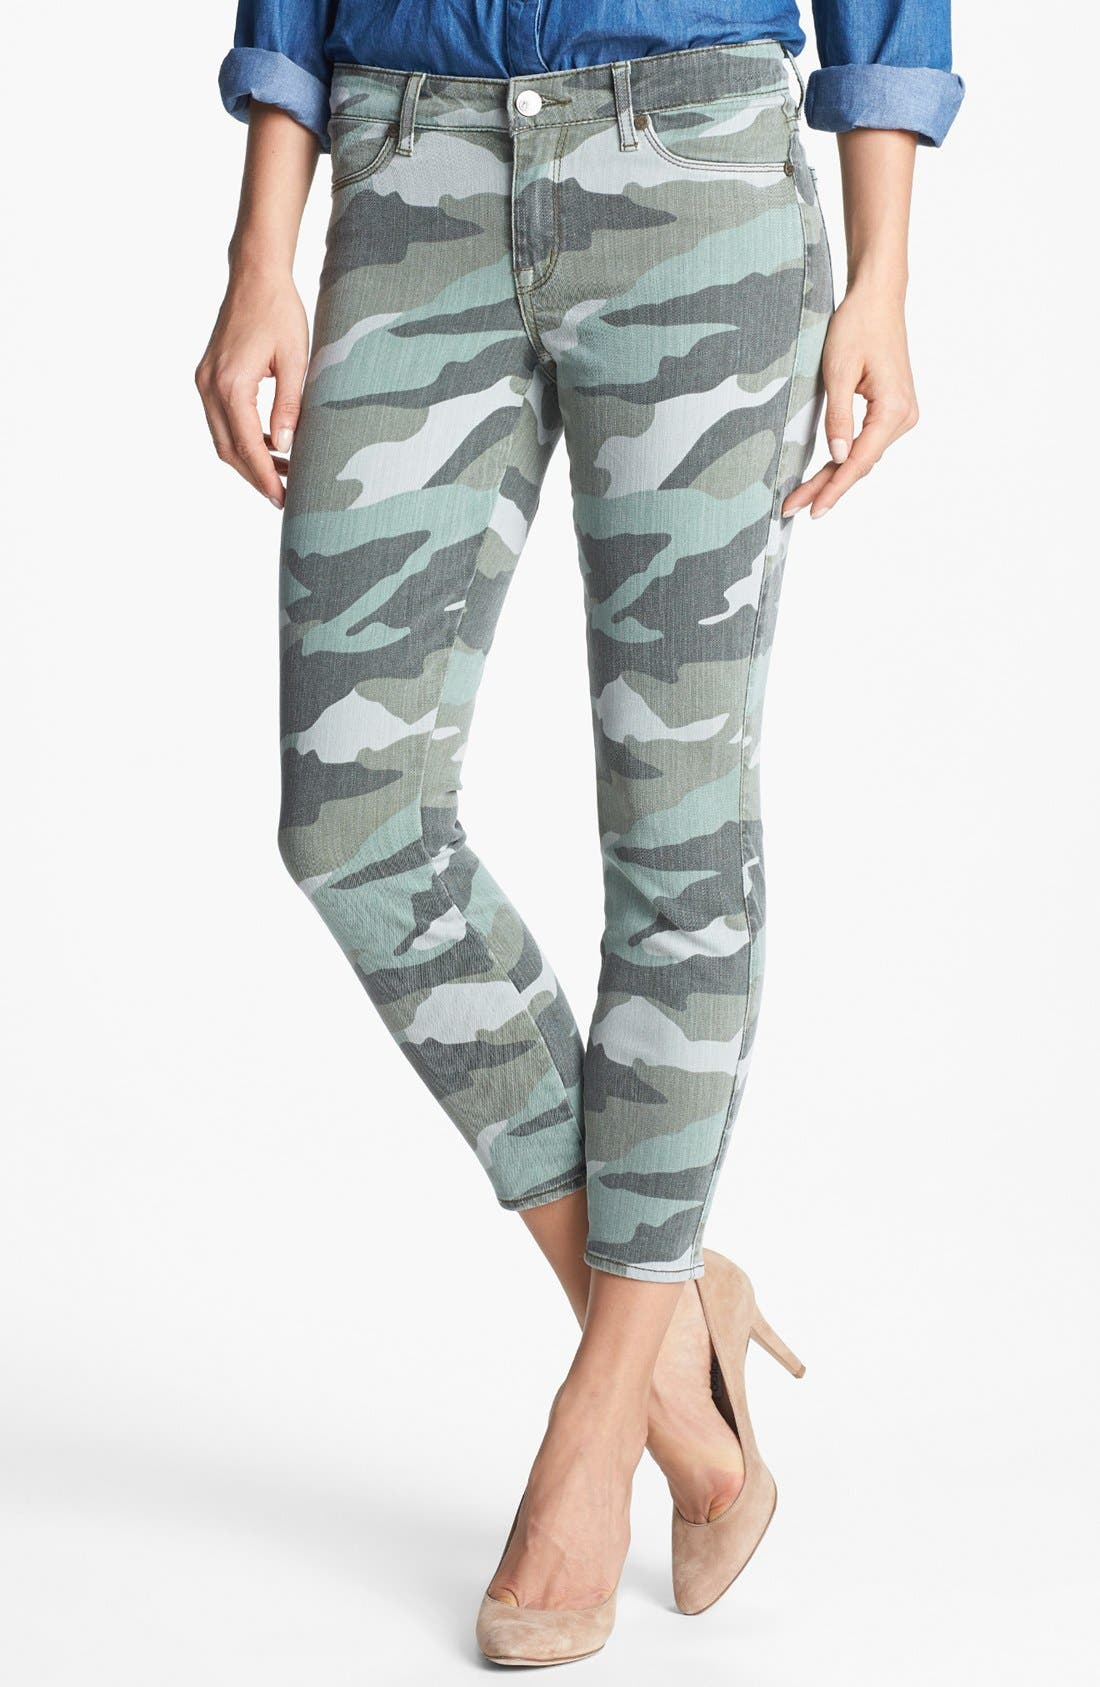 Alternate Image 1 Selected - CJ by Cookie Johnson 'Believe' Camo Crop Stretch Jeans